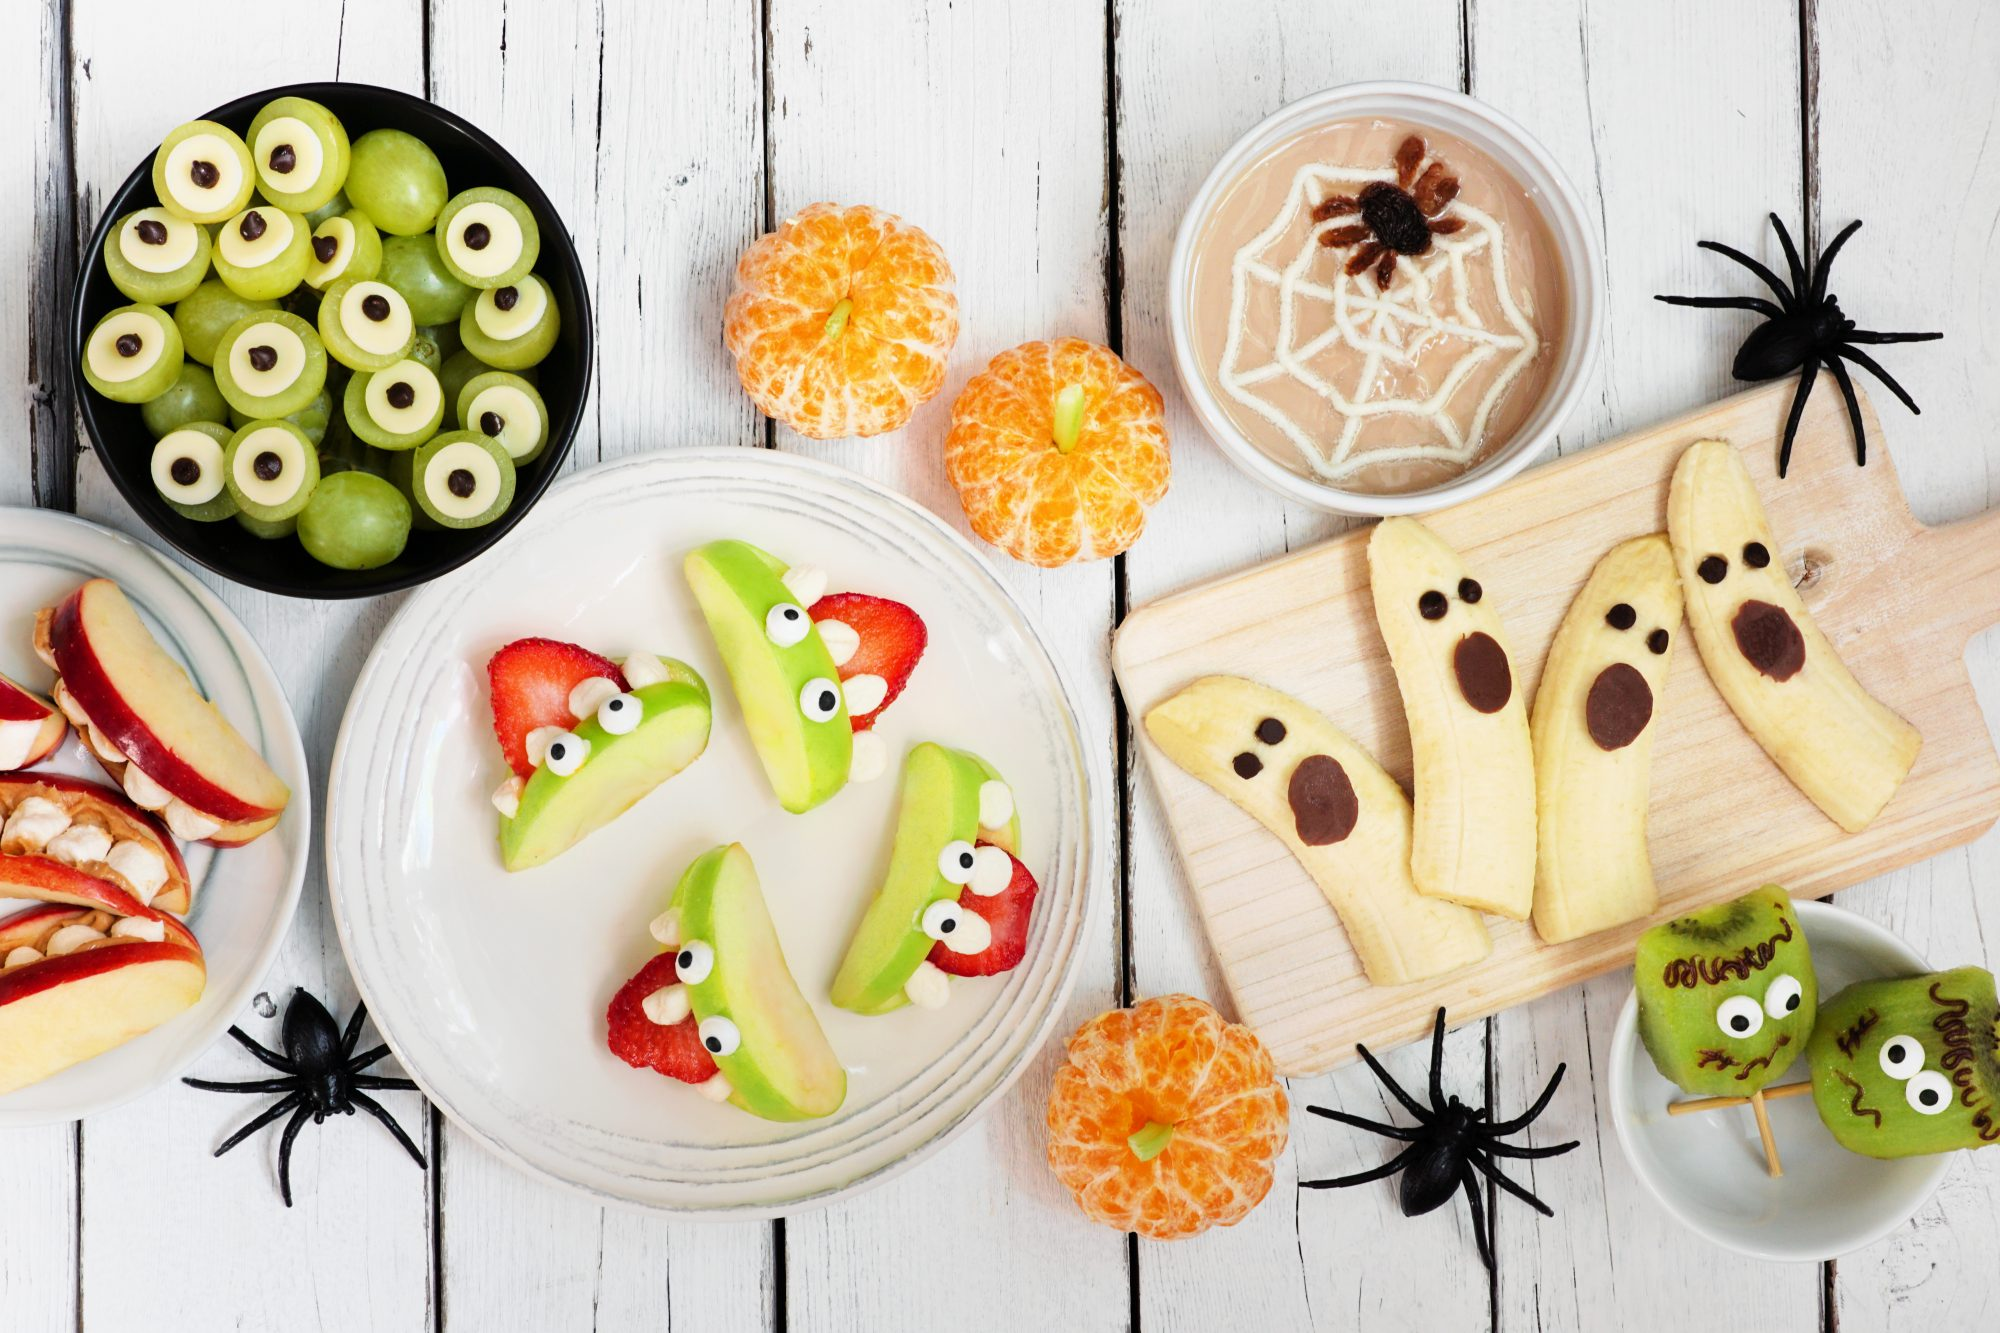 Halloween food ideas, party food, snacks, and treats - Halloween snack table spread